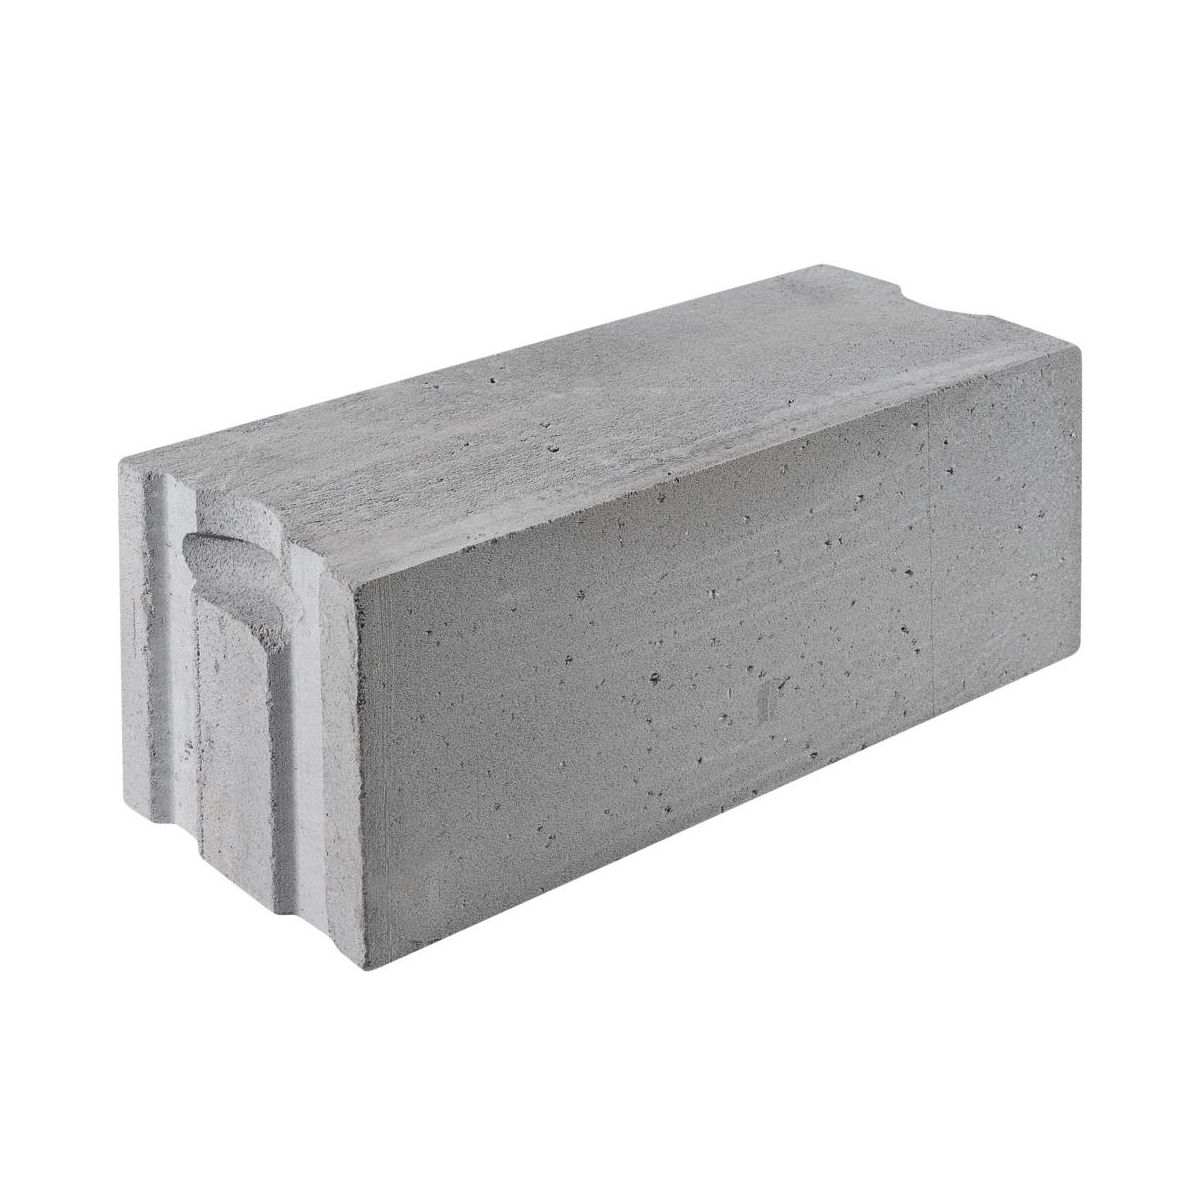 Beton decoratif leroy merlin maison design for Beton hydrofuge leroy merlin